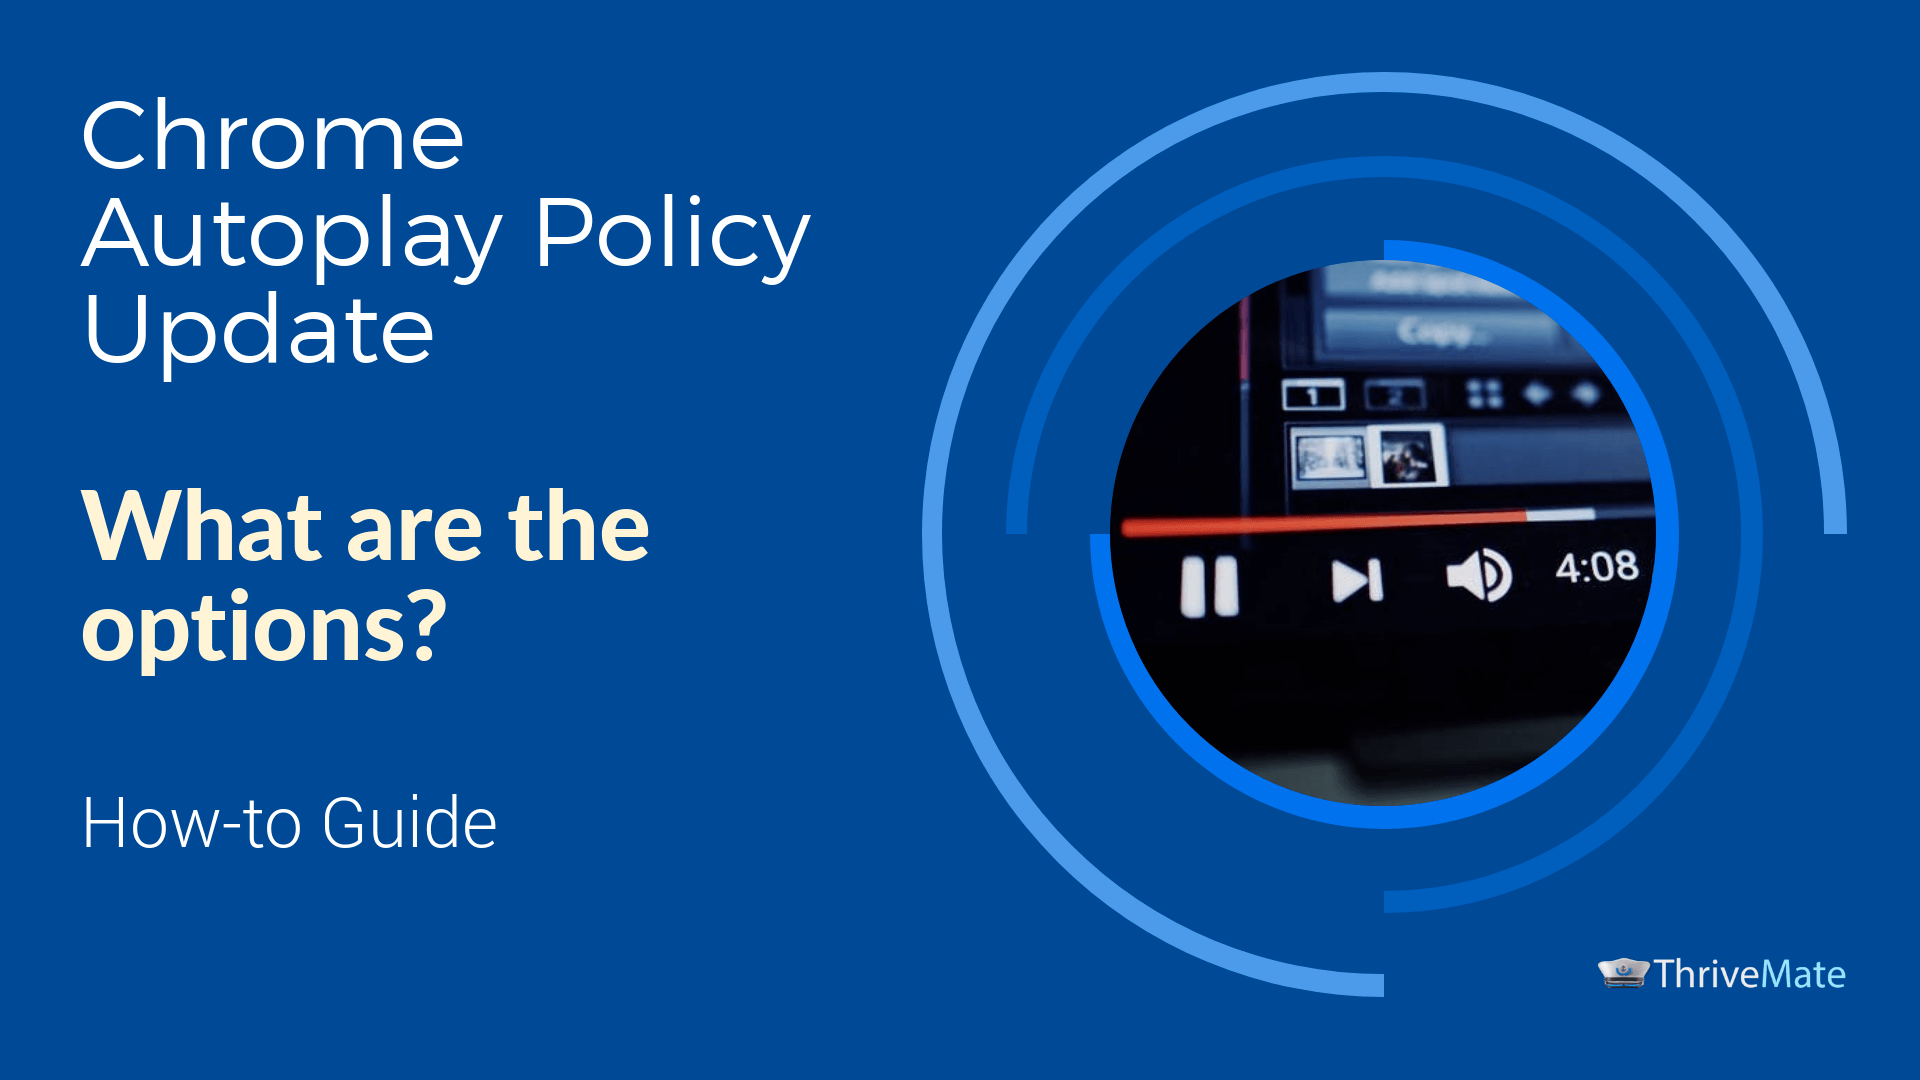 Chrome Autoplay Policy Update: What are the options? - ThriveMate com